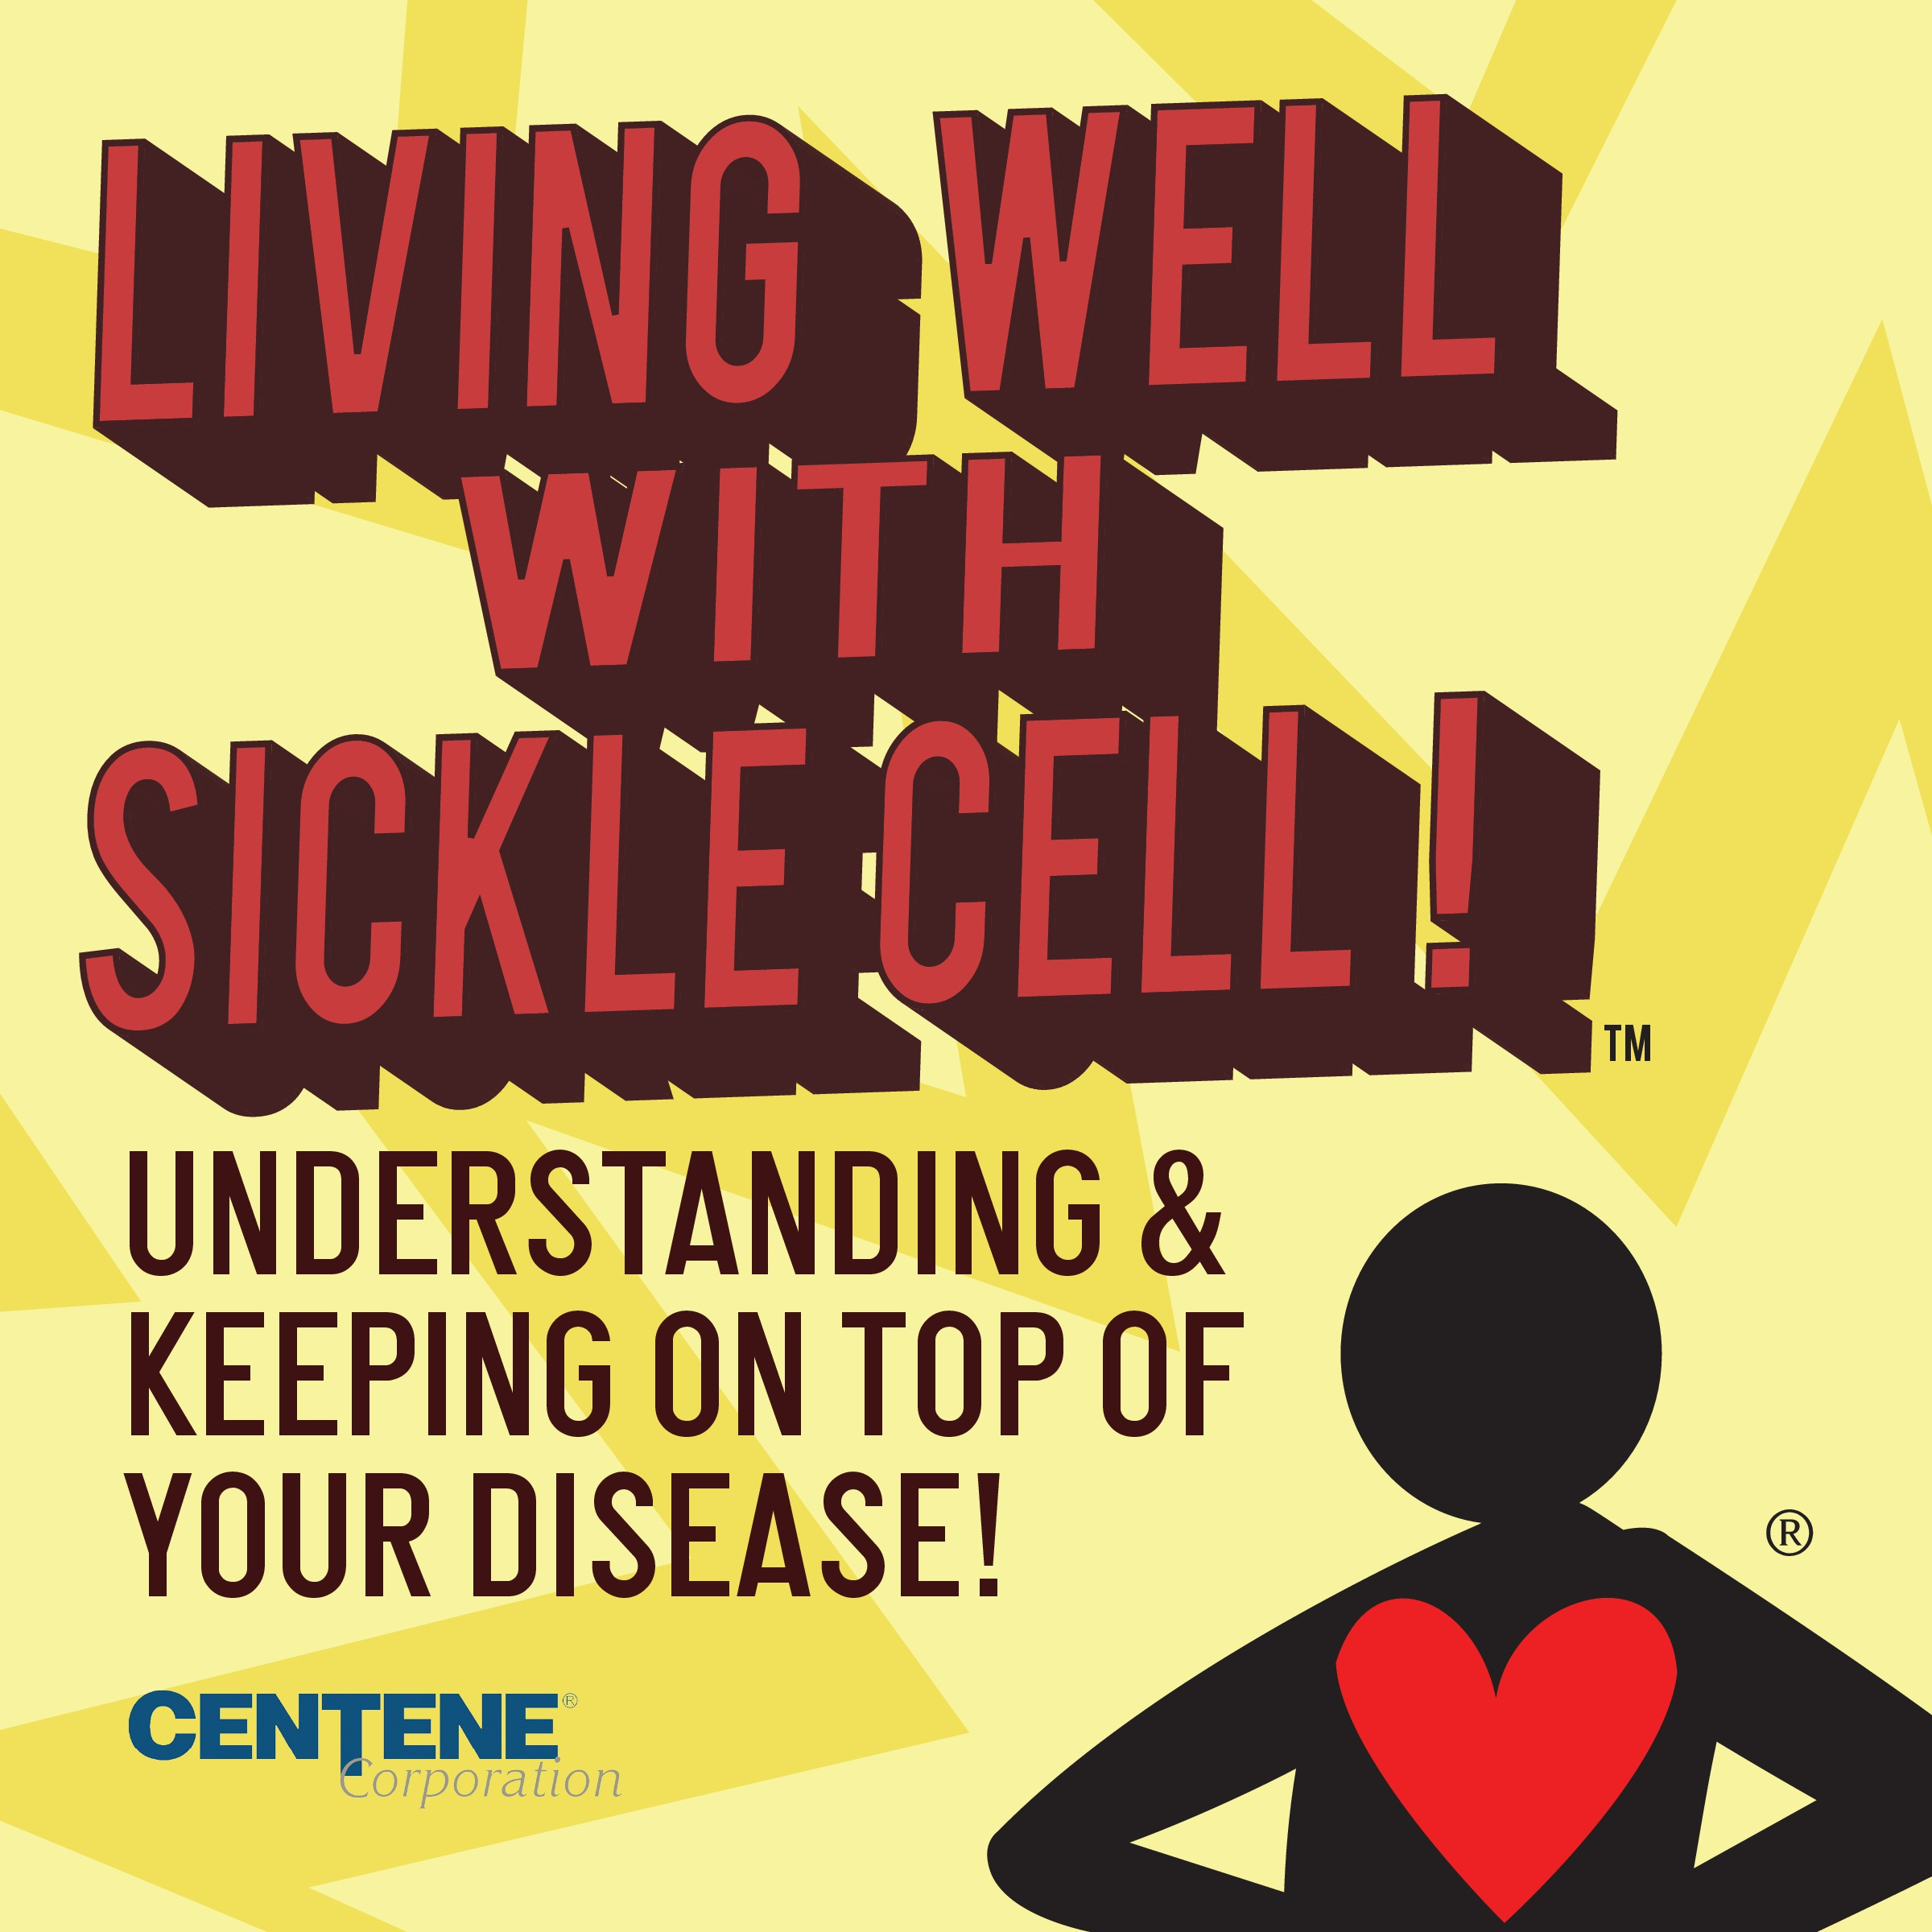 LIVING WELL WITH SICKLE CELL